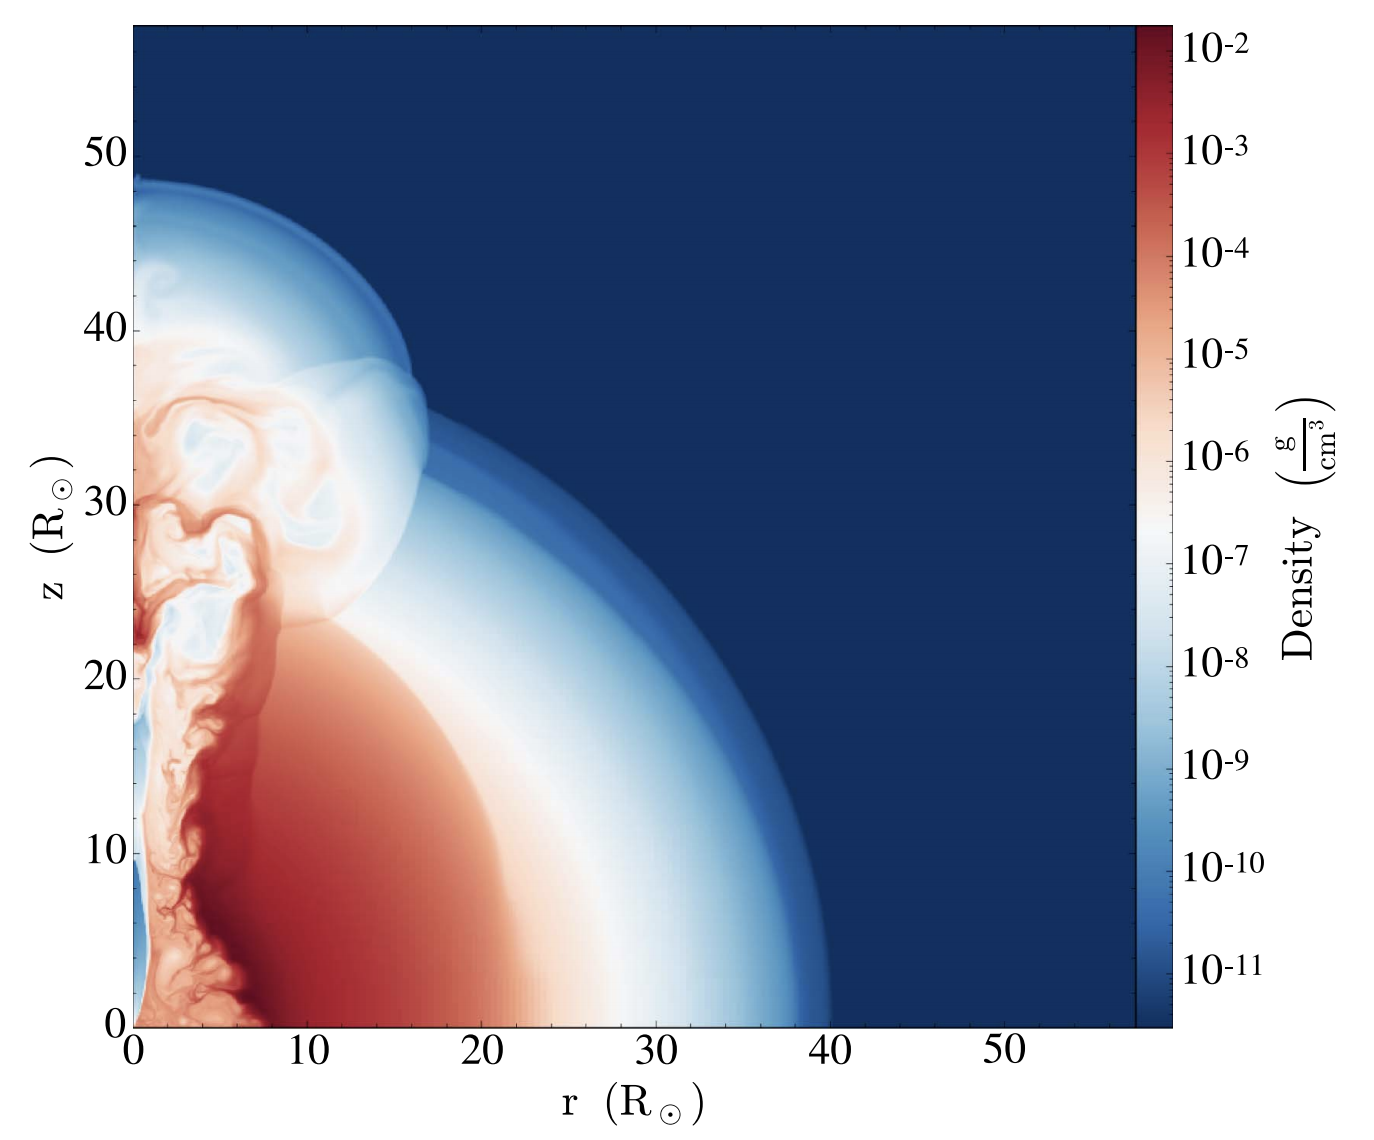 Ultra-long Gamma-Ray Bursts from the Collapse of Blue Supergiant Stars: An End-to-end Simulation